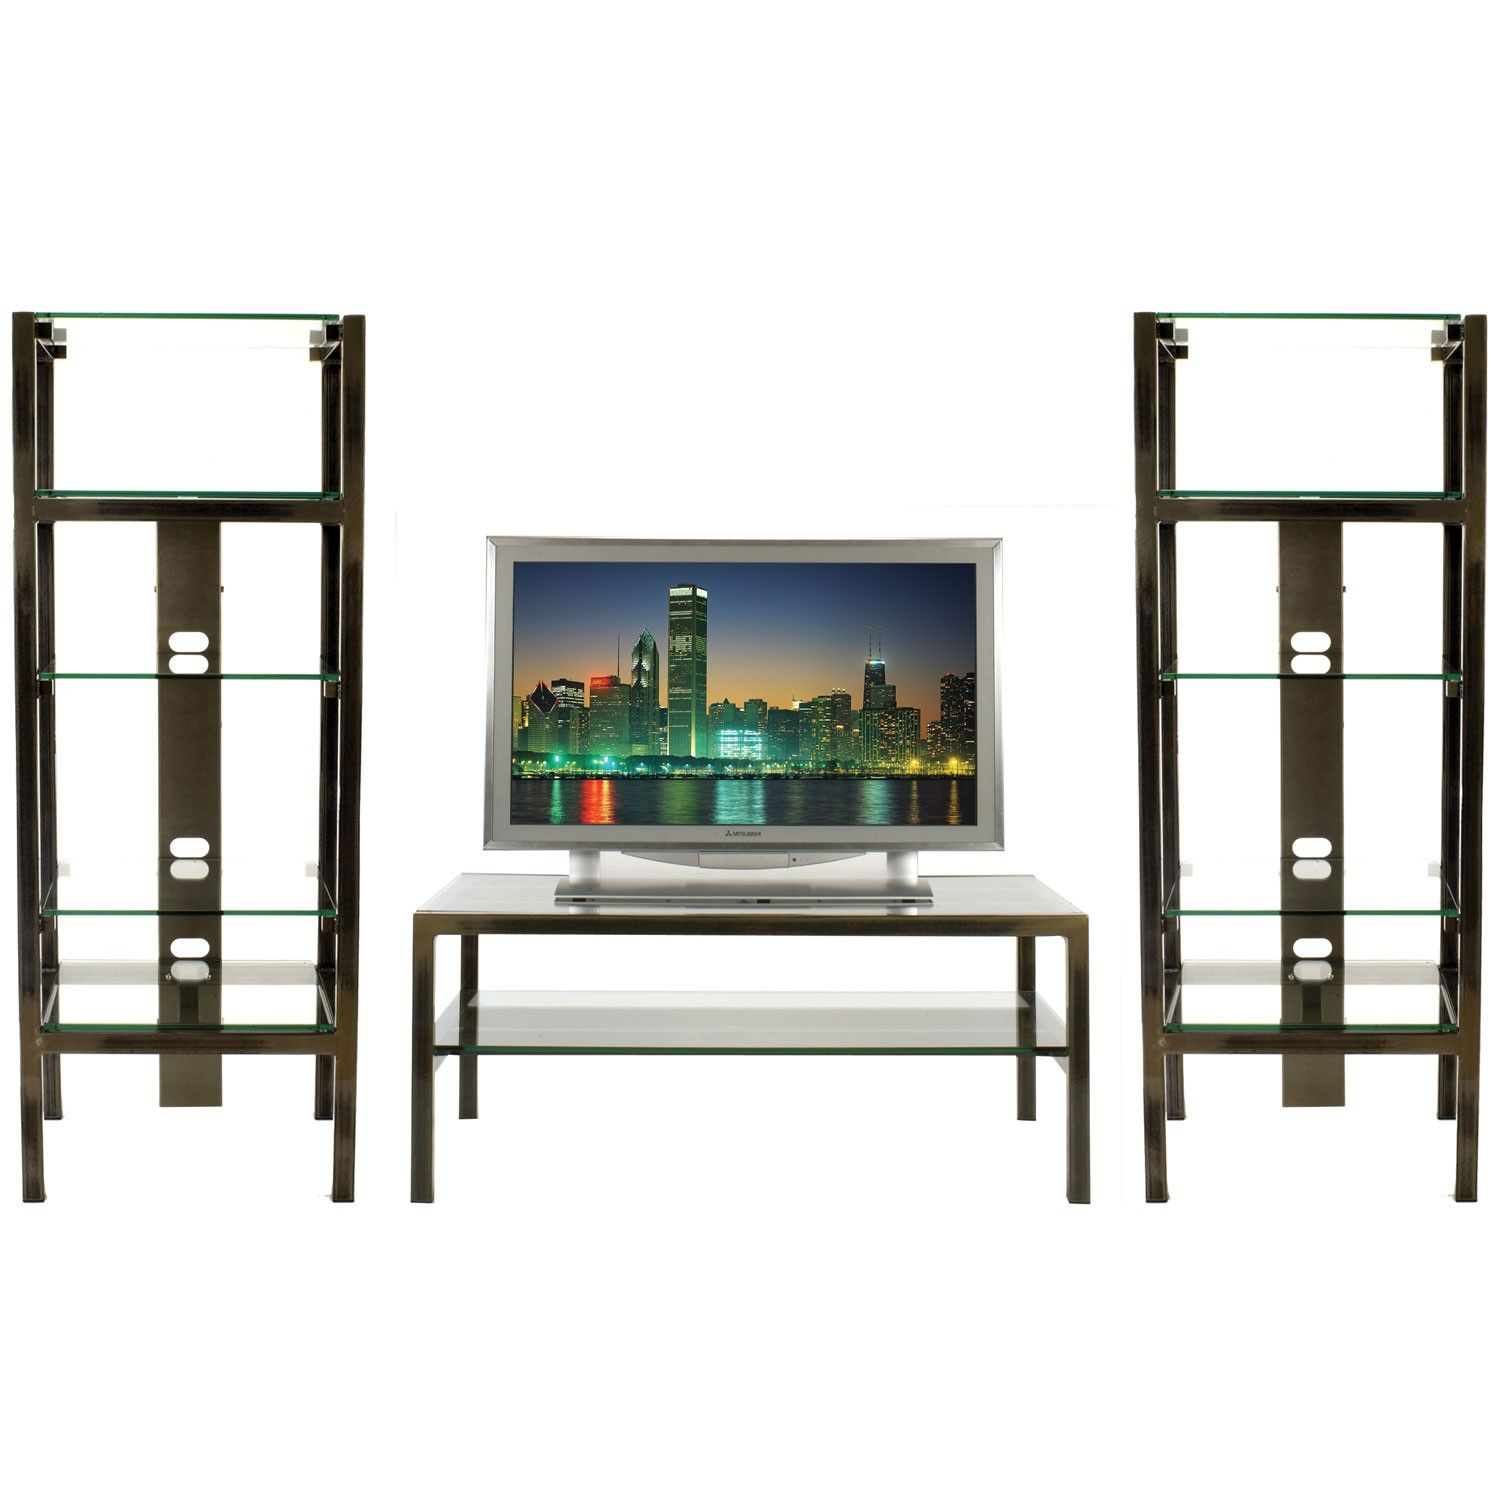 Steel glass home theater display shelving table by boltz tv boltz cd racks and dvd racks are ideal for cd storage and dvd storage we also offer tv stands outdoor bistro sets modern office furniture and modern geotapseo Gallery